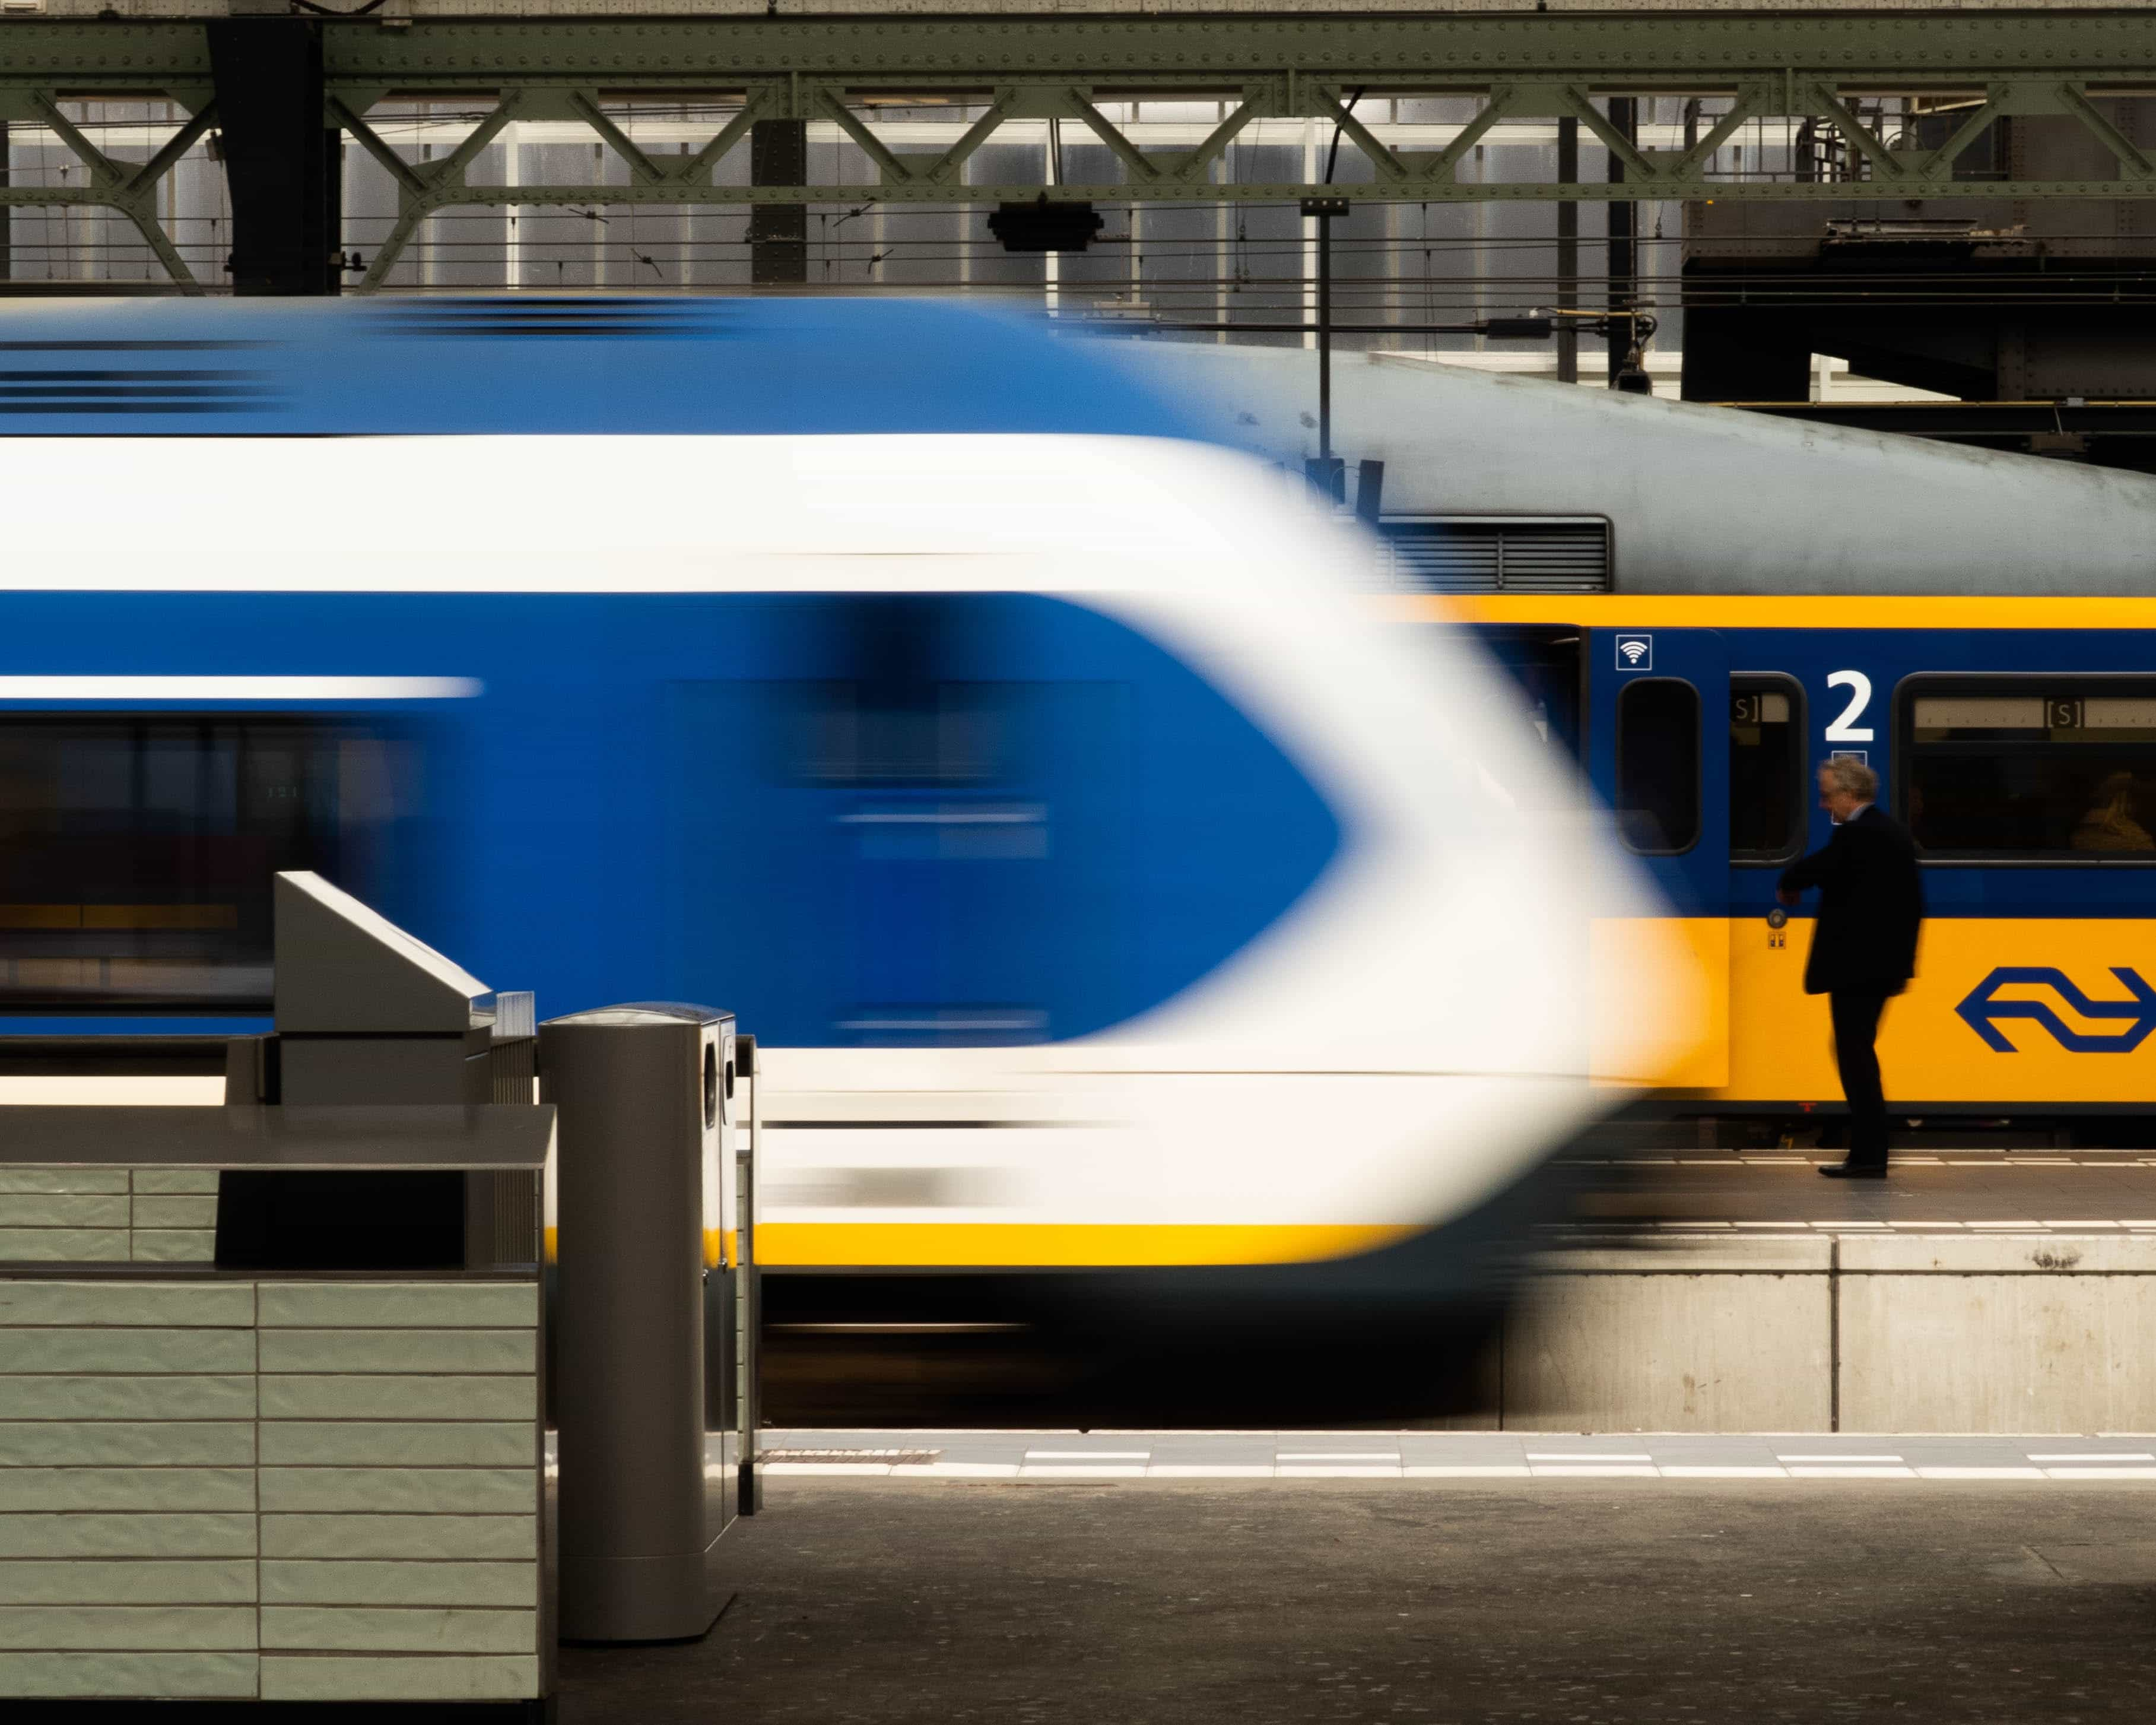 NS Trains at a Trainstation in The Netherlands